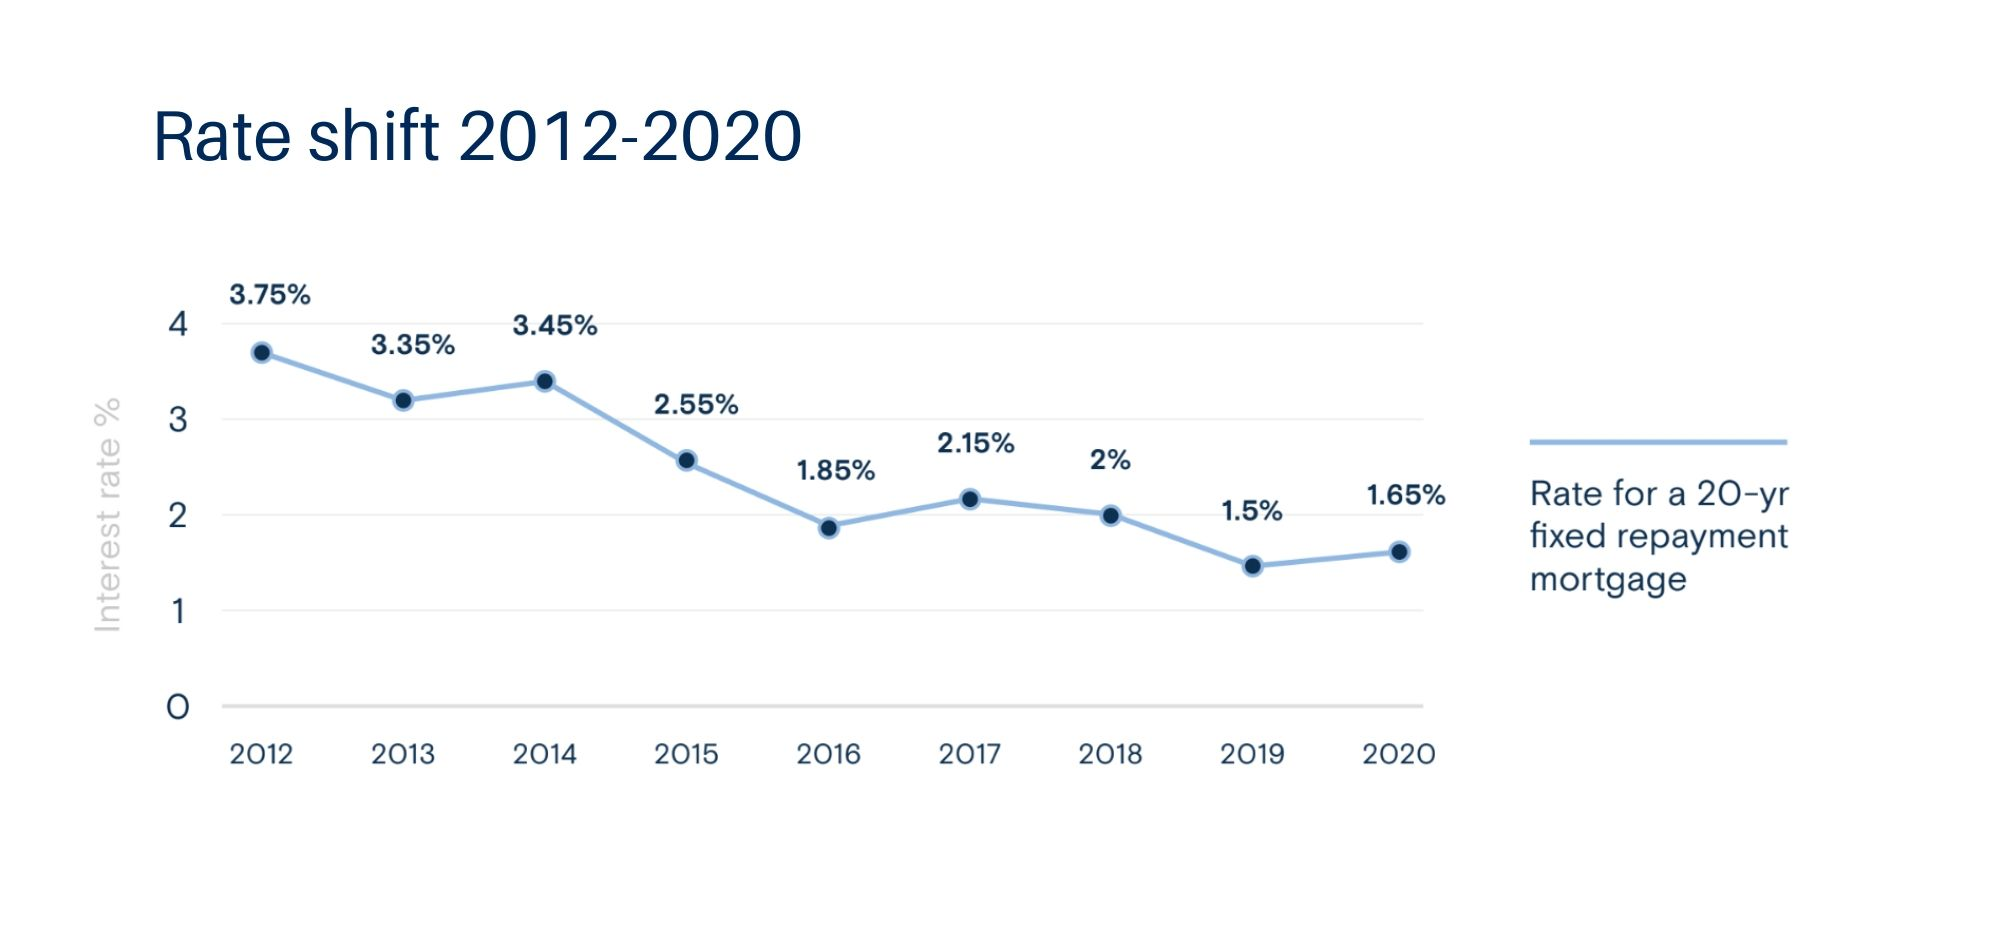 French Mortgage Interest Rate Shifts 2012-2020